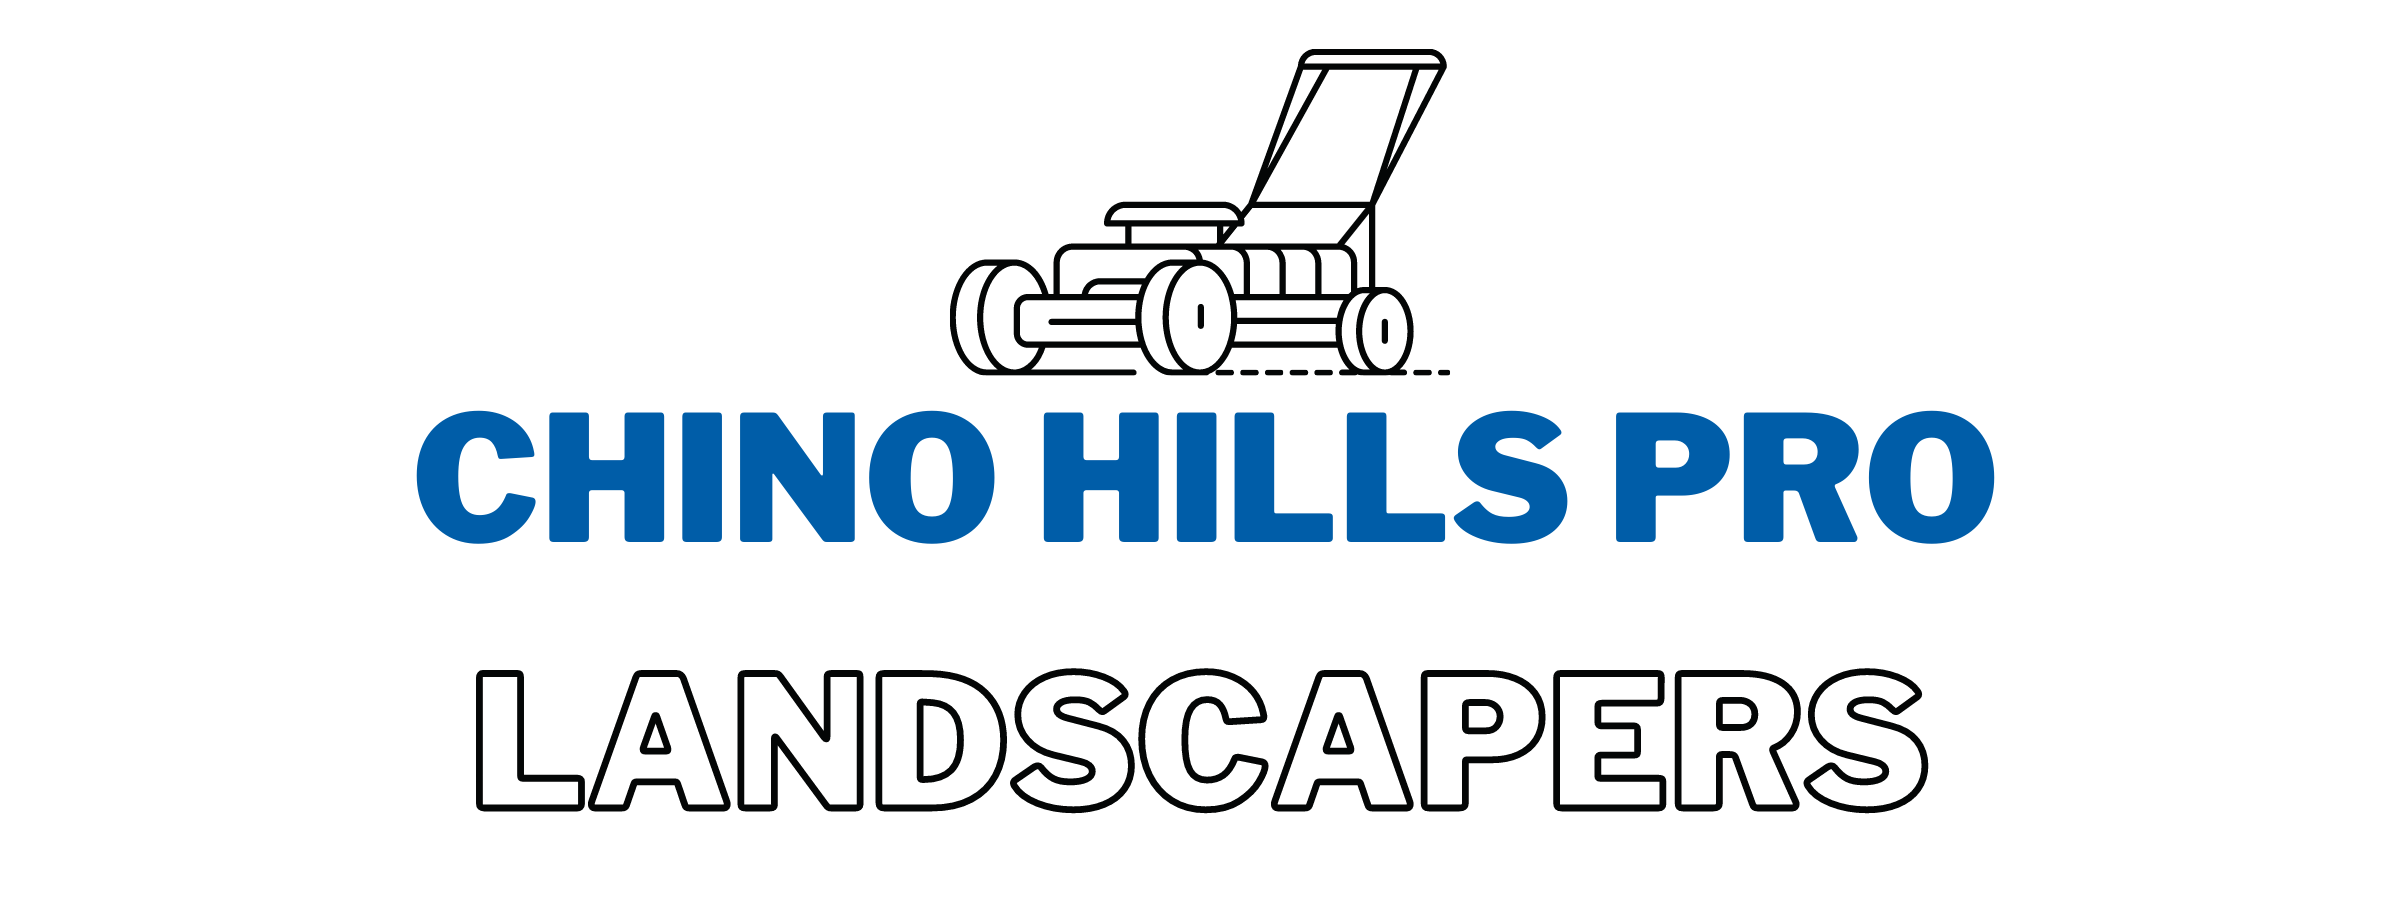 this image shows chino hills landsapers